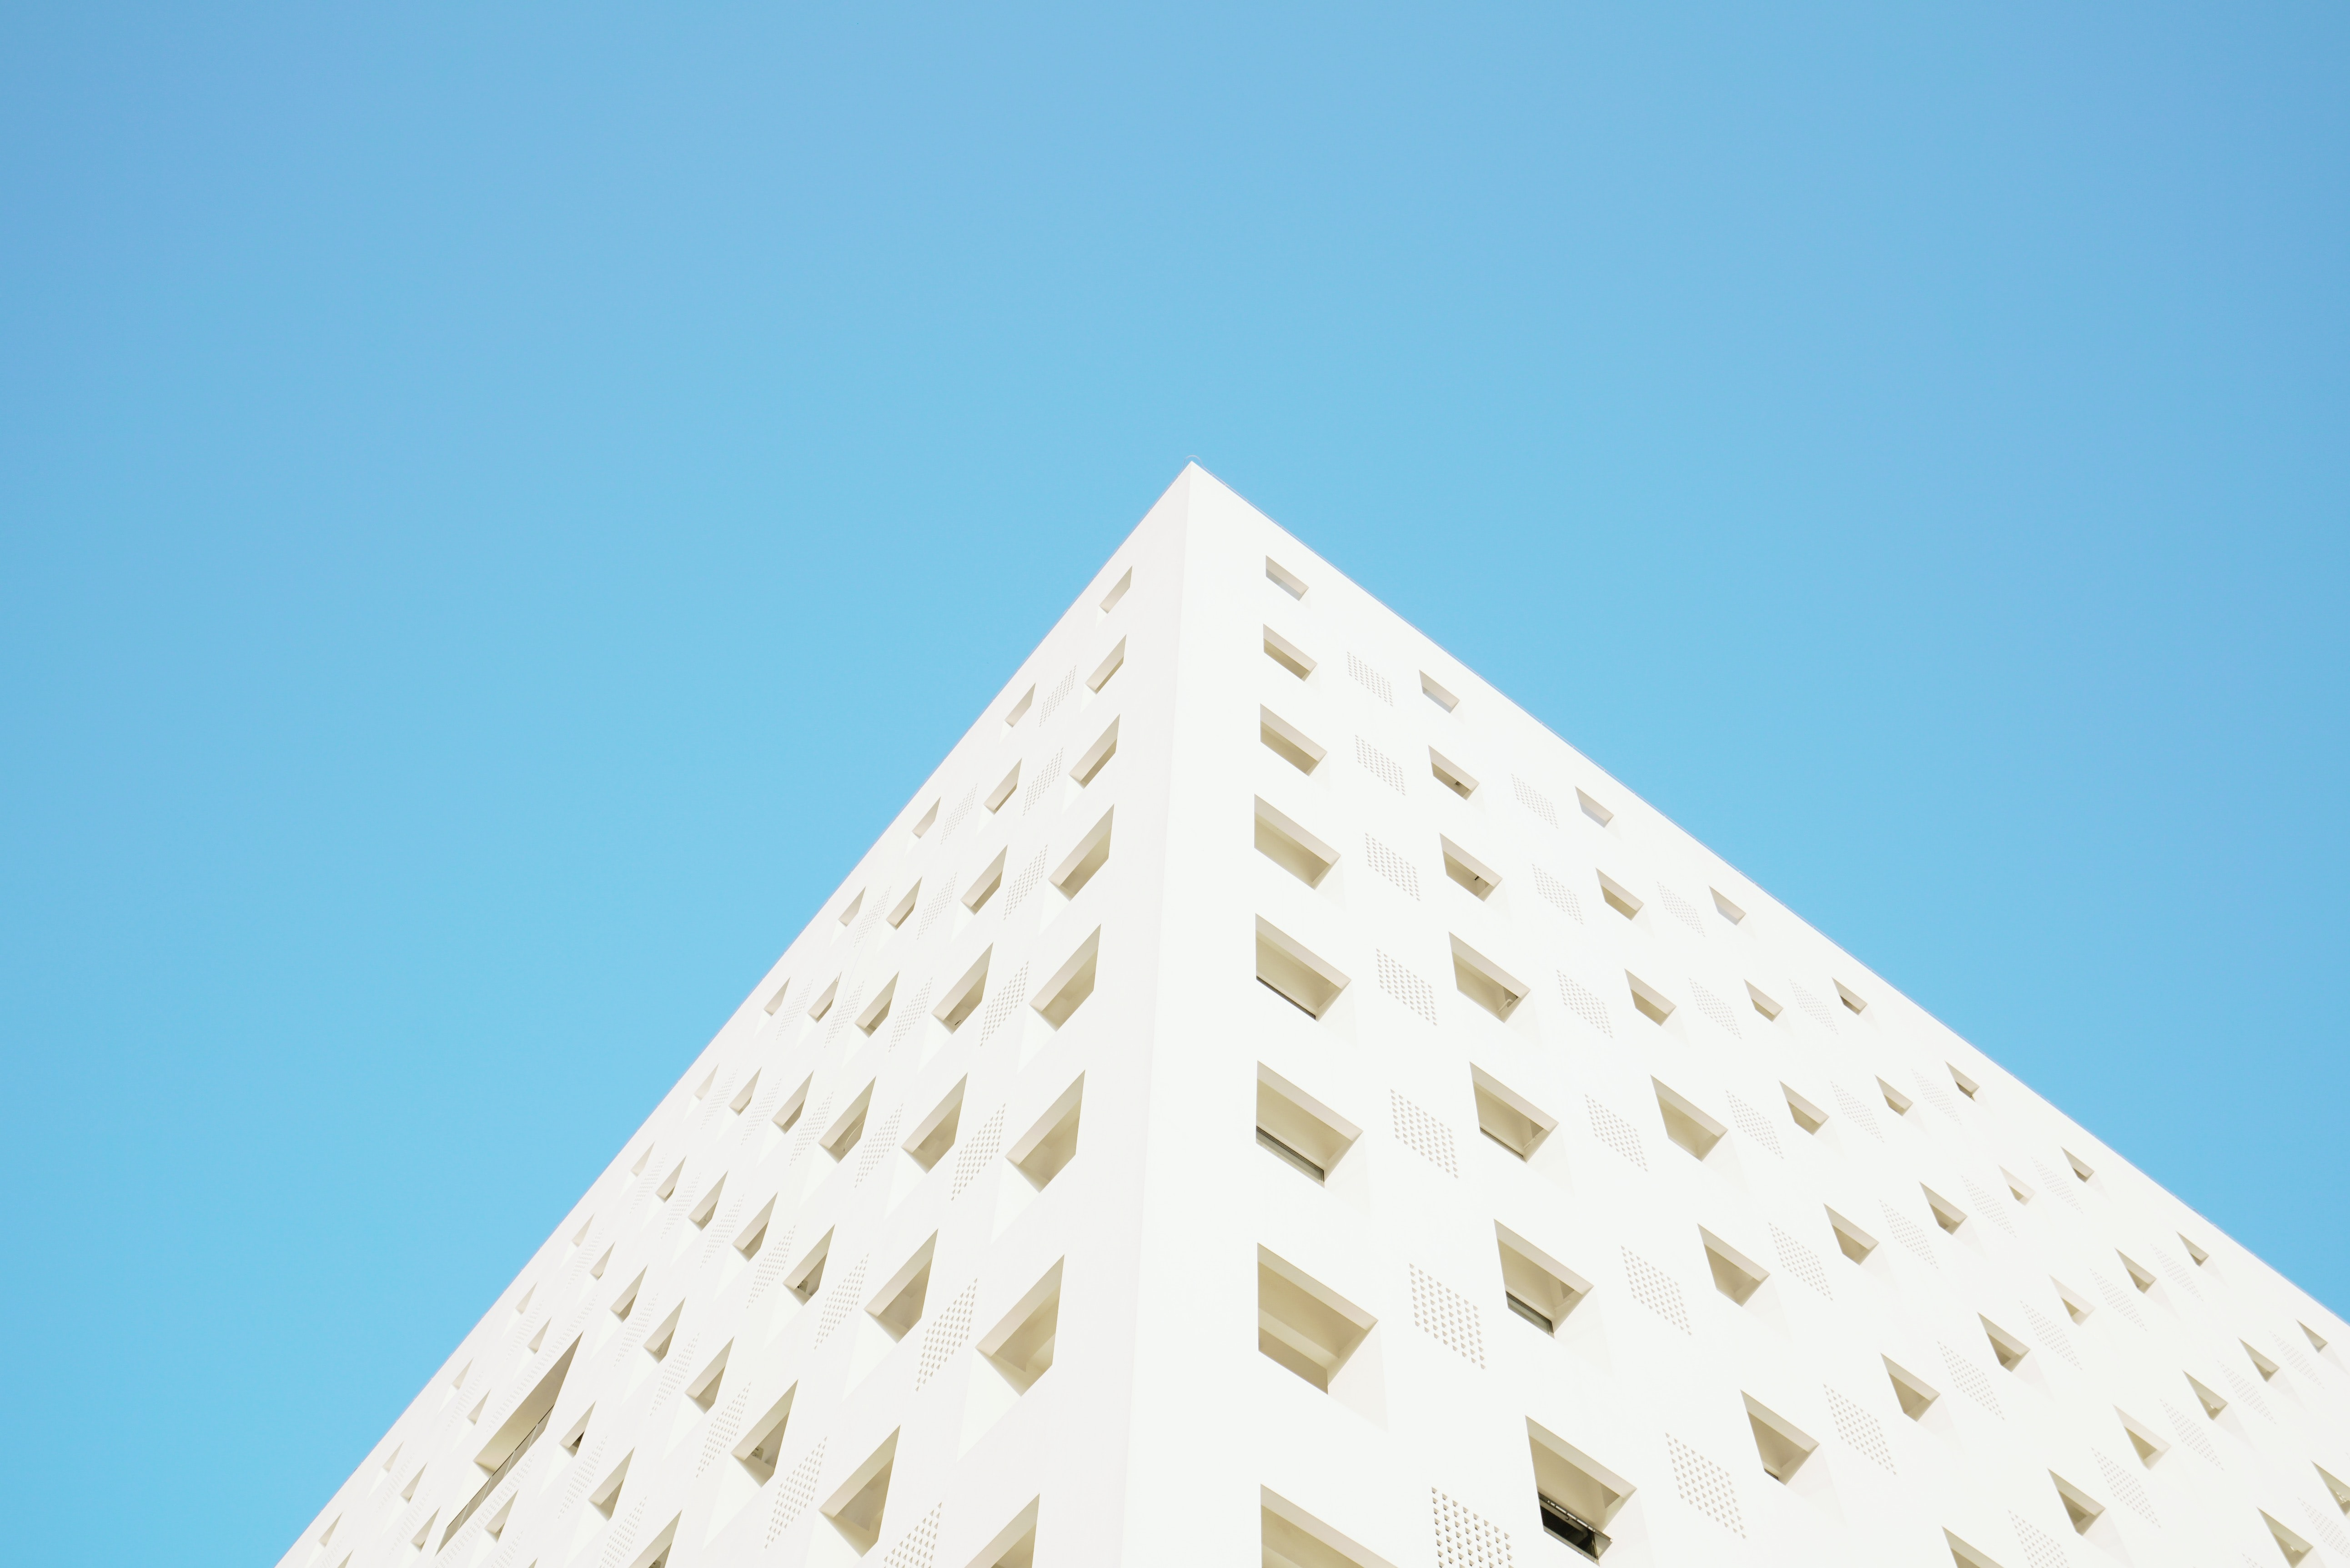 worm's eye view photography of white building under blue clear sky during daytime